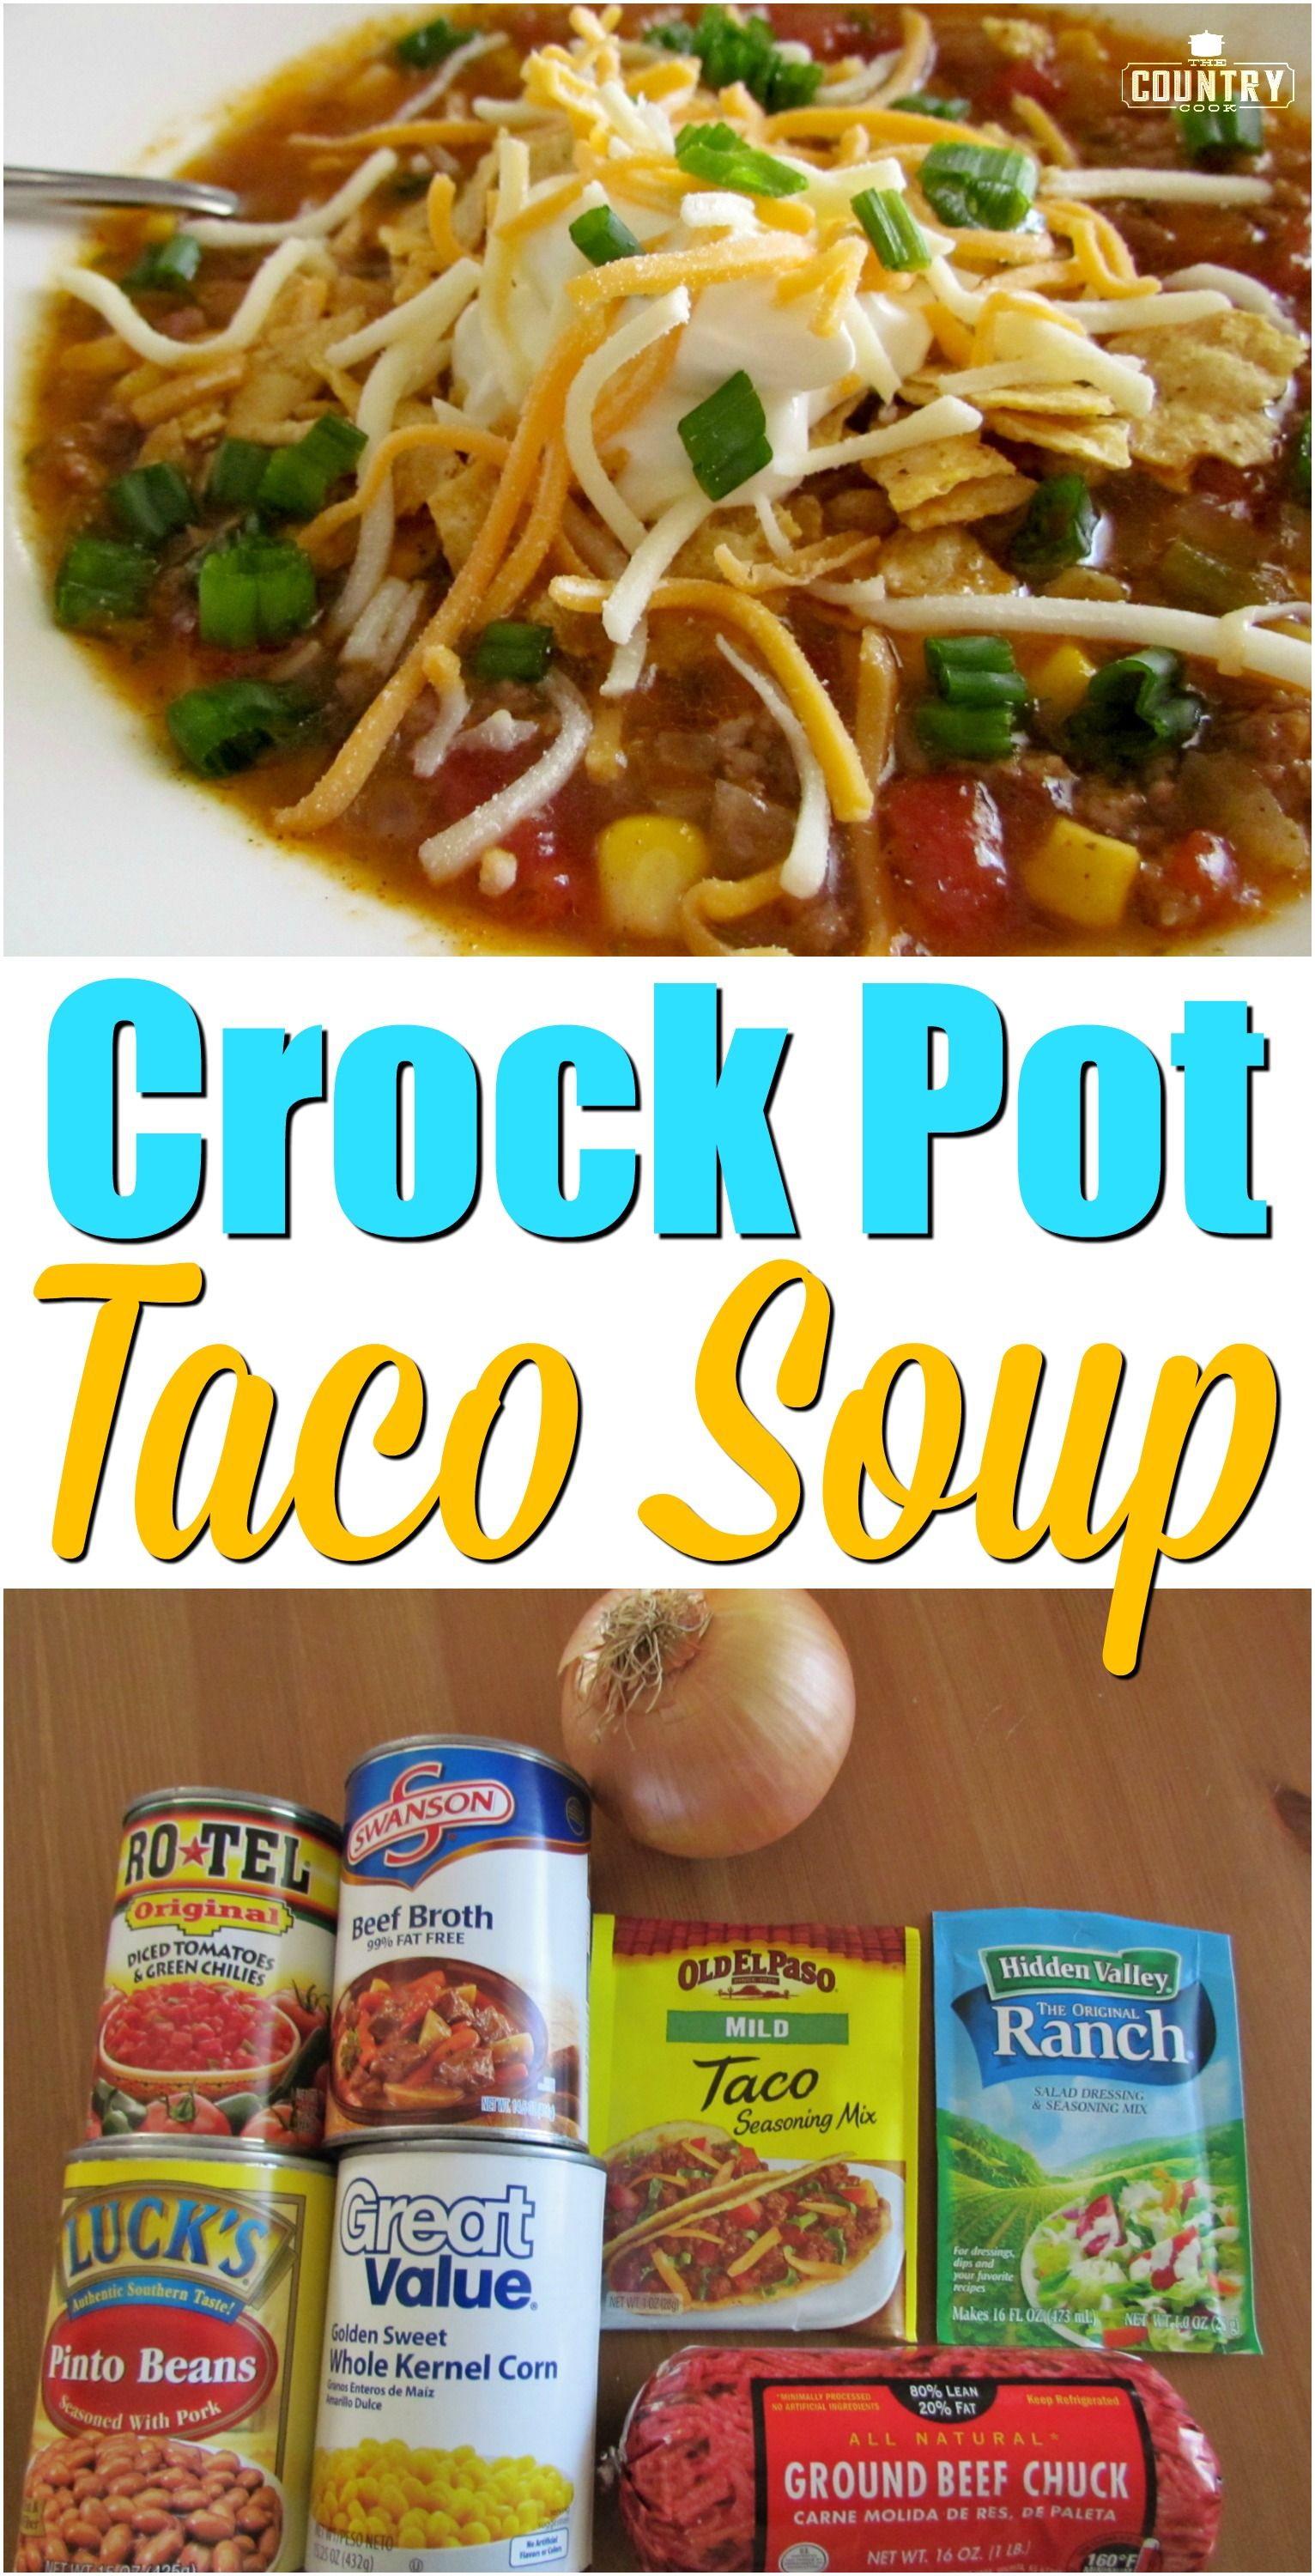 Crock Pot Taco Soup Recipe Crock Pot Tacos Food Recipes